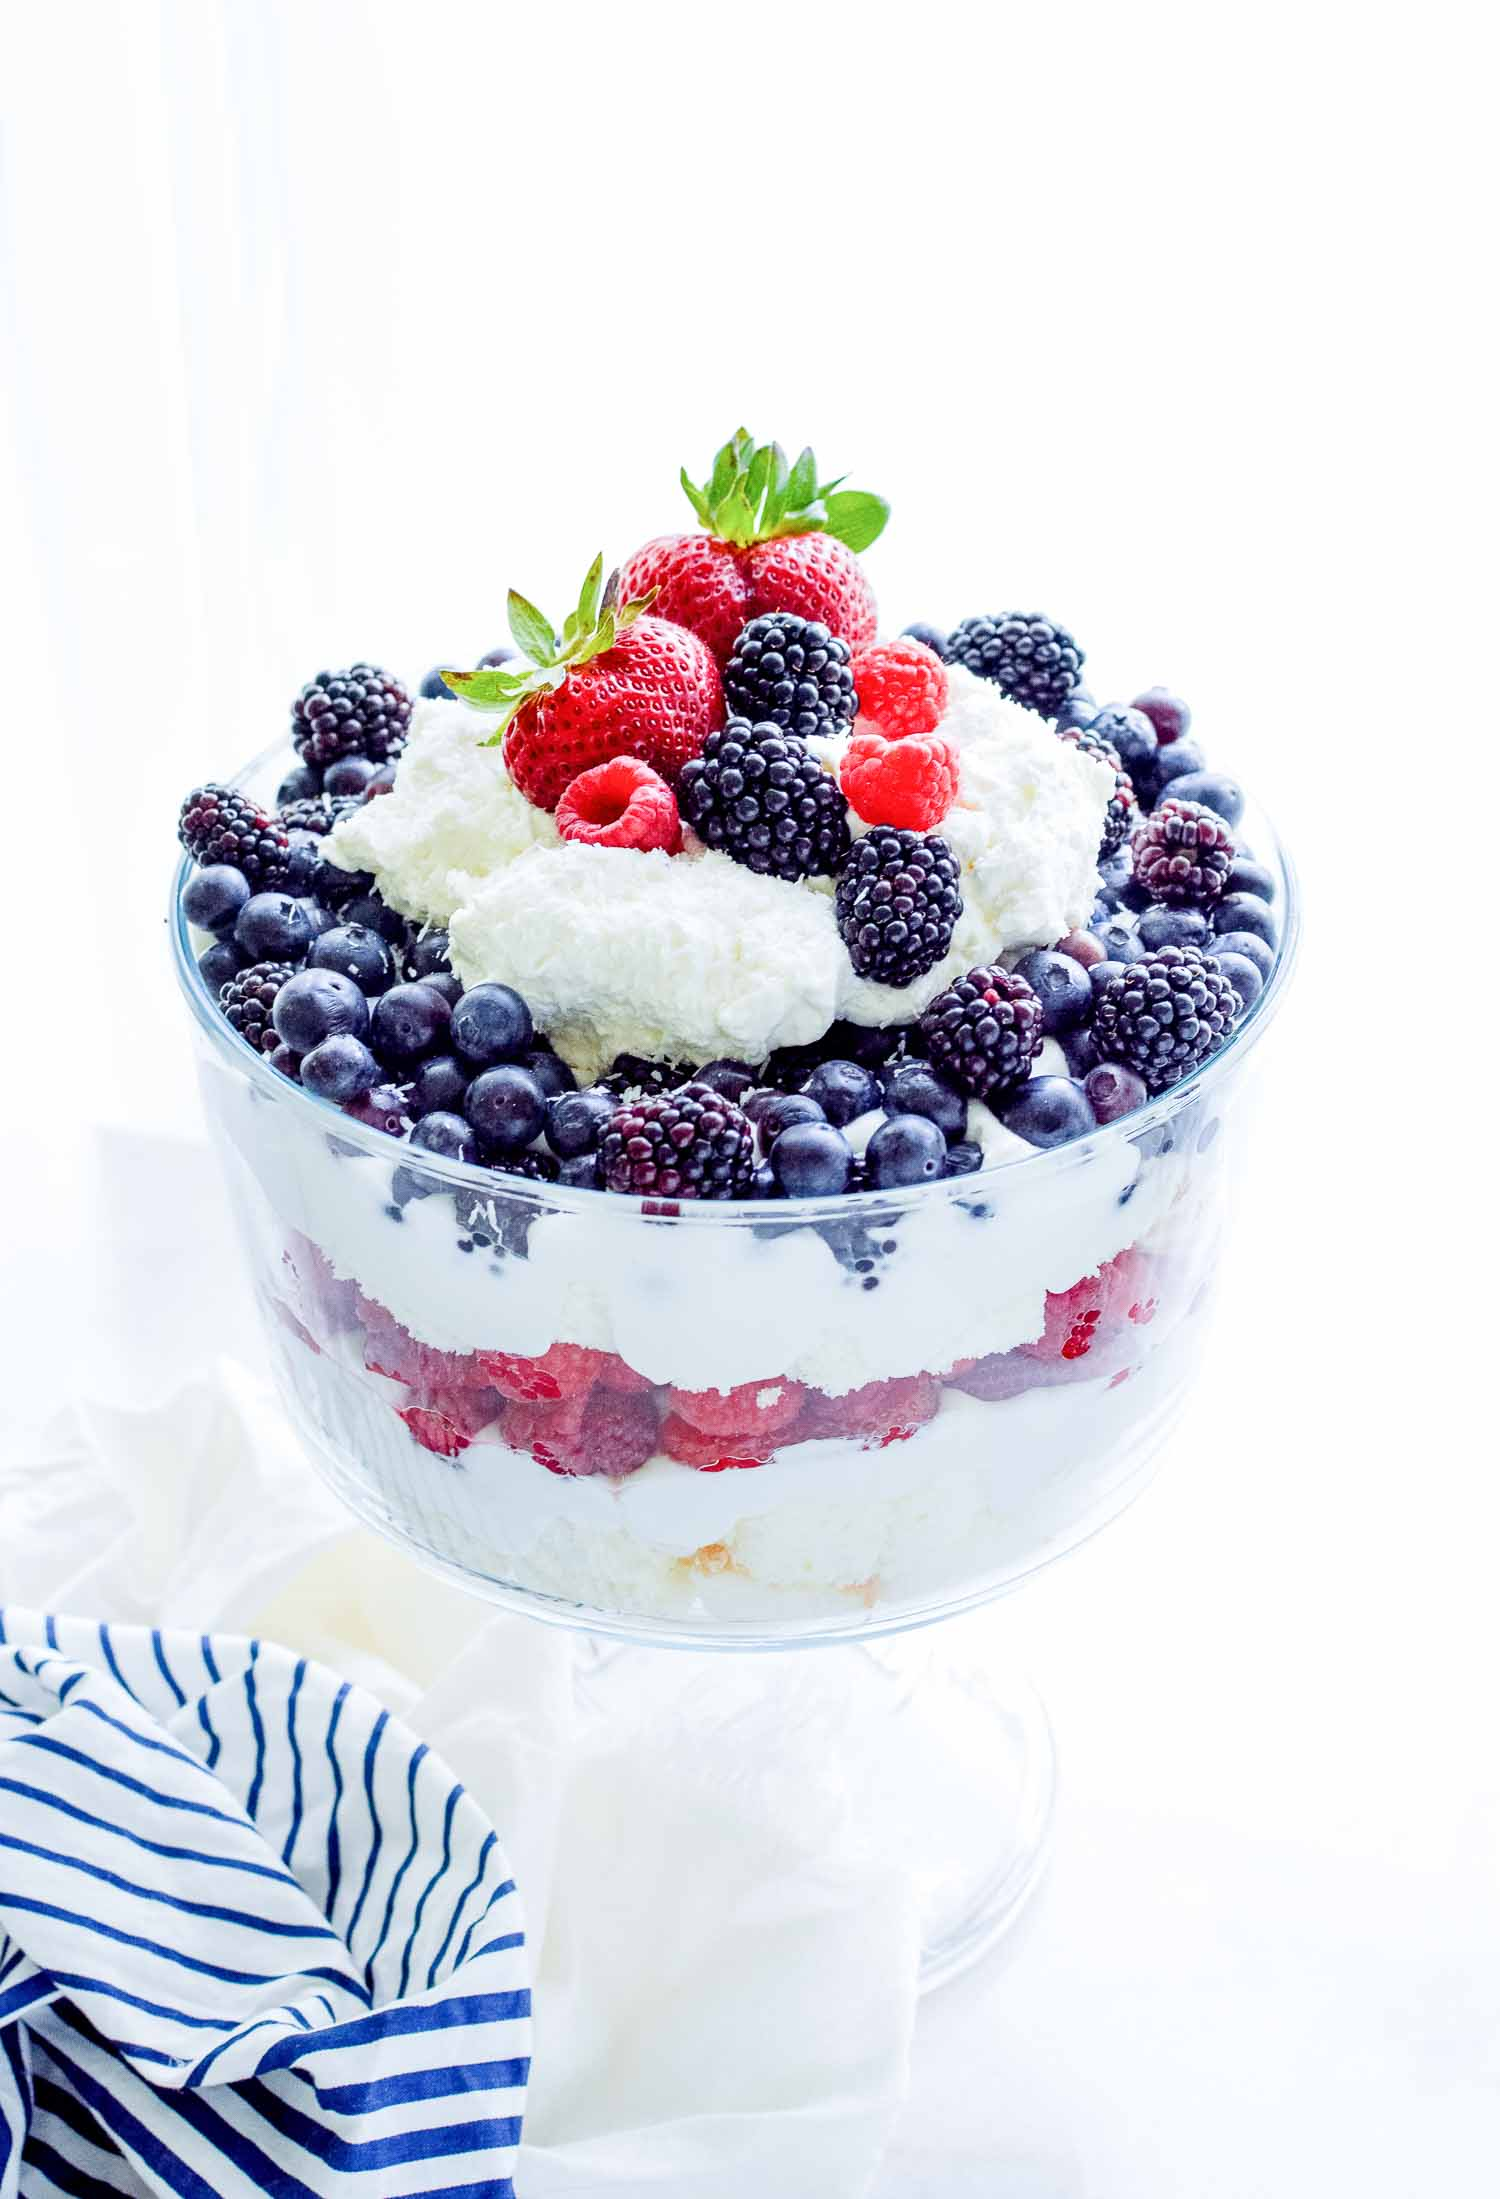 A clear glass trifle dish filled with cake, berries, and cream topped with cream and berries with a blue and white towel around the bottom.